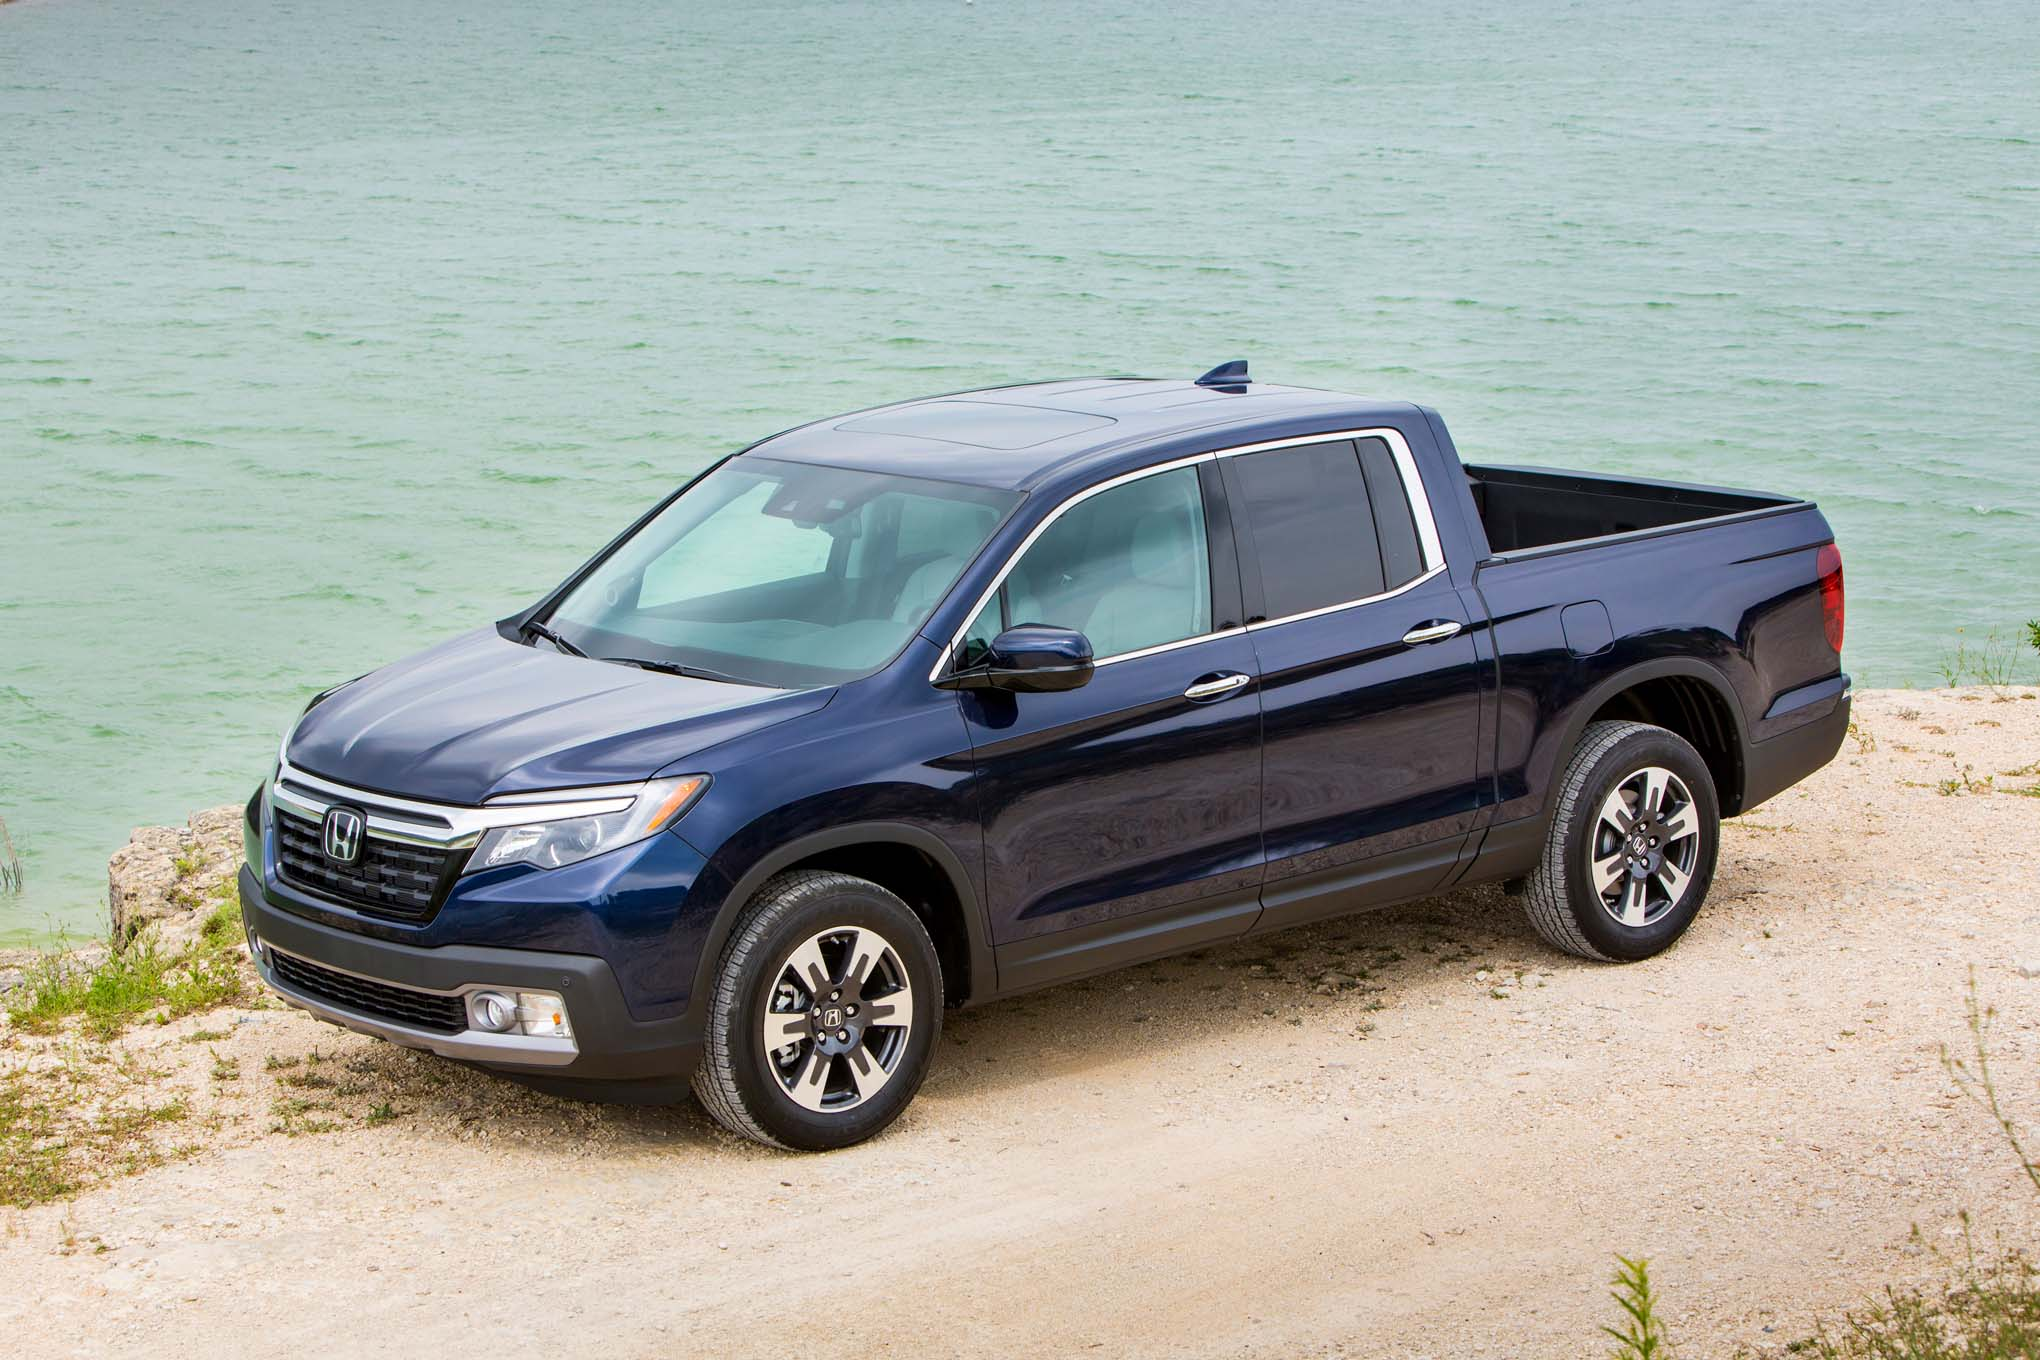 small resolution of video honda drops toolbox into bed of ridgeline to prove a subtle point also 2017 honda ridgeline blue on single motor circuit diagram